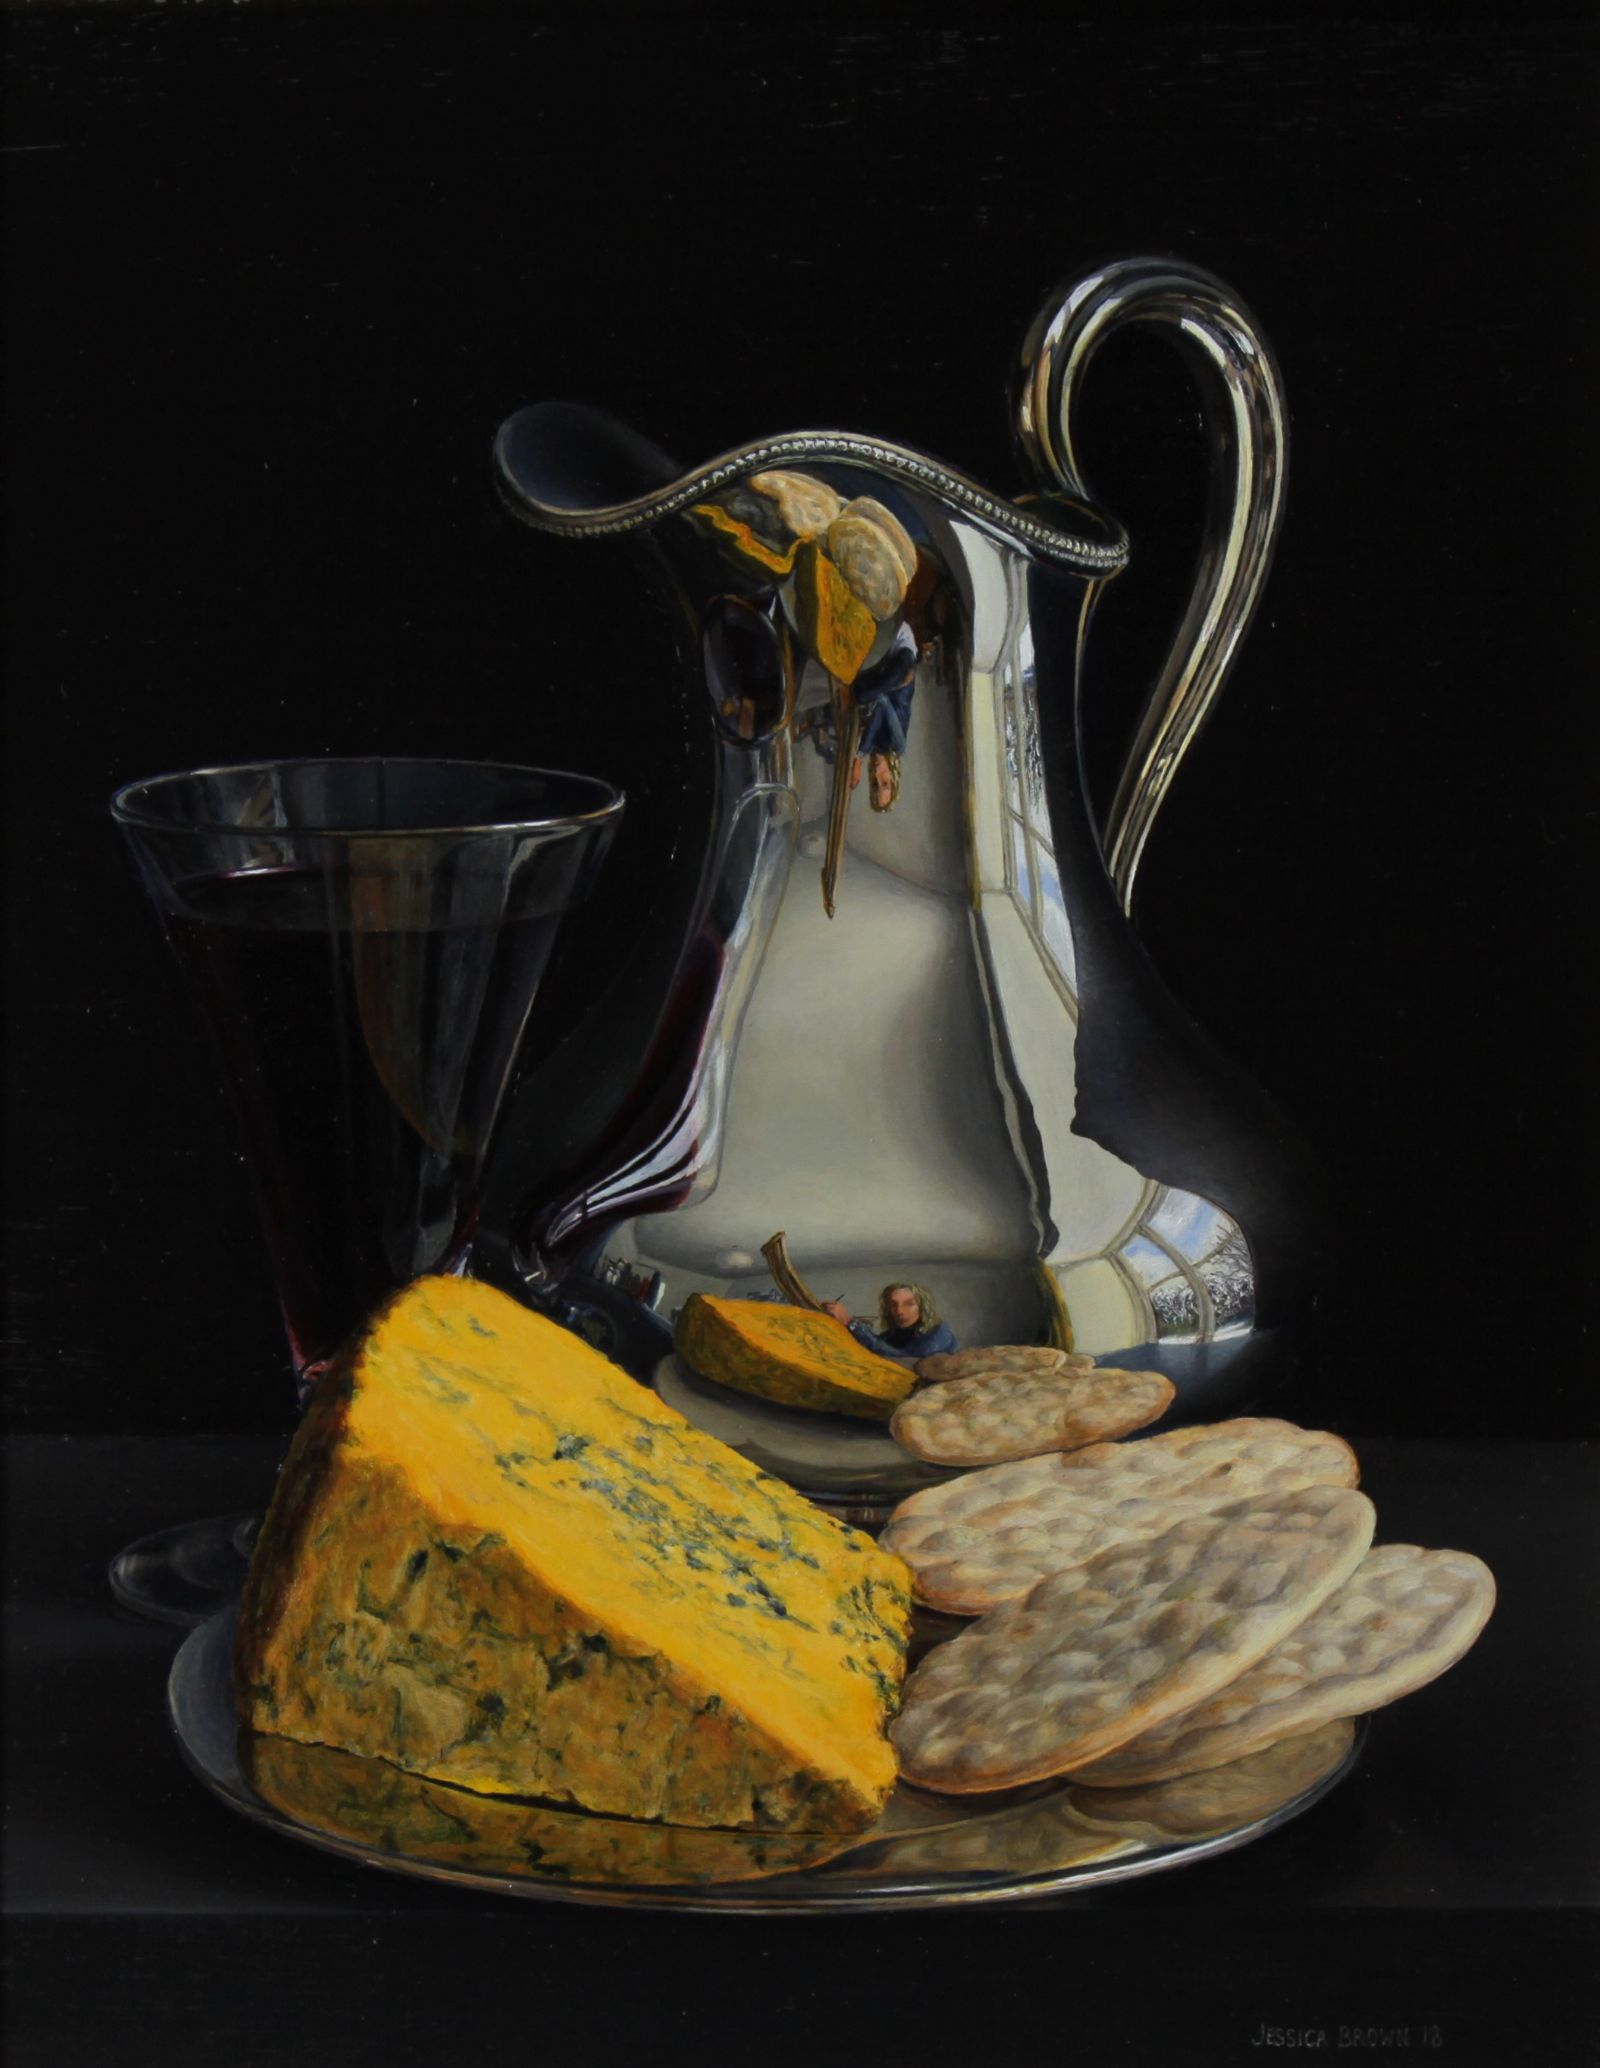 Still Life with Silver Jug, Claret and Blacksticks Blue Cheese by Jessica Brown